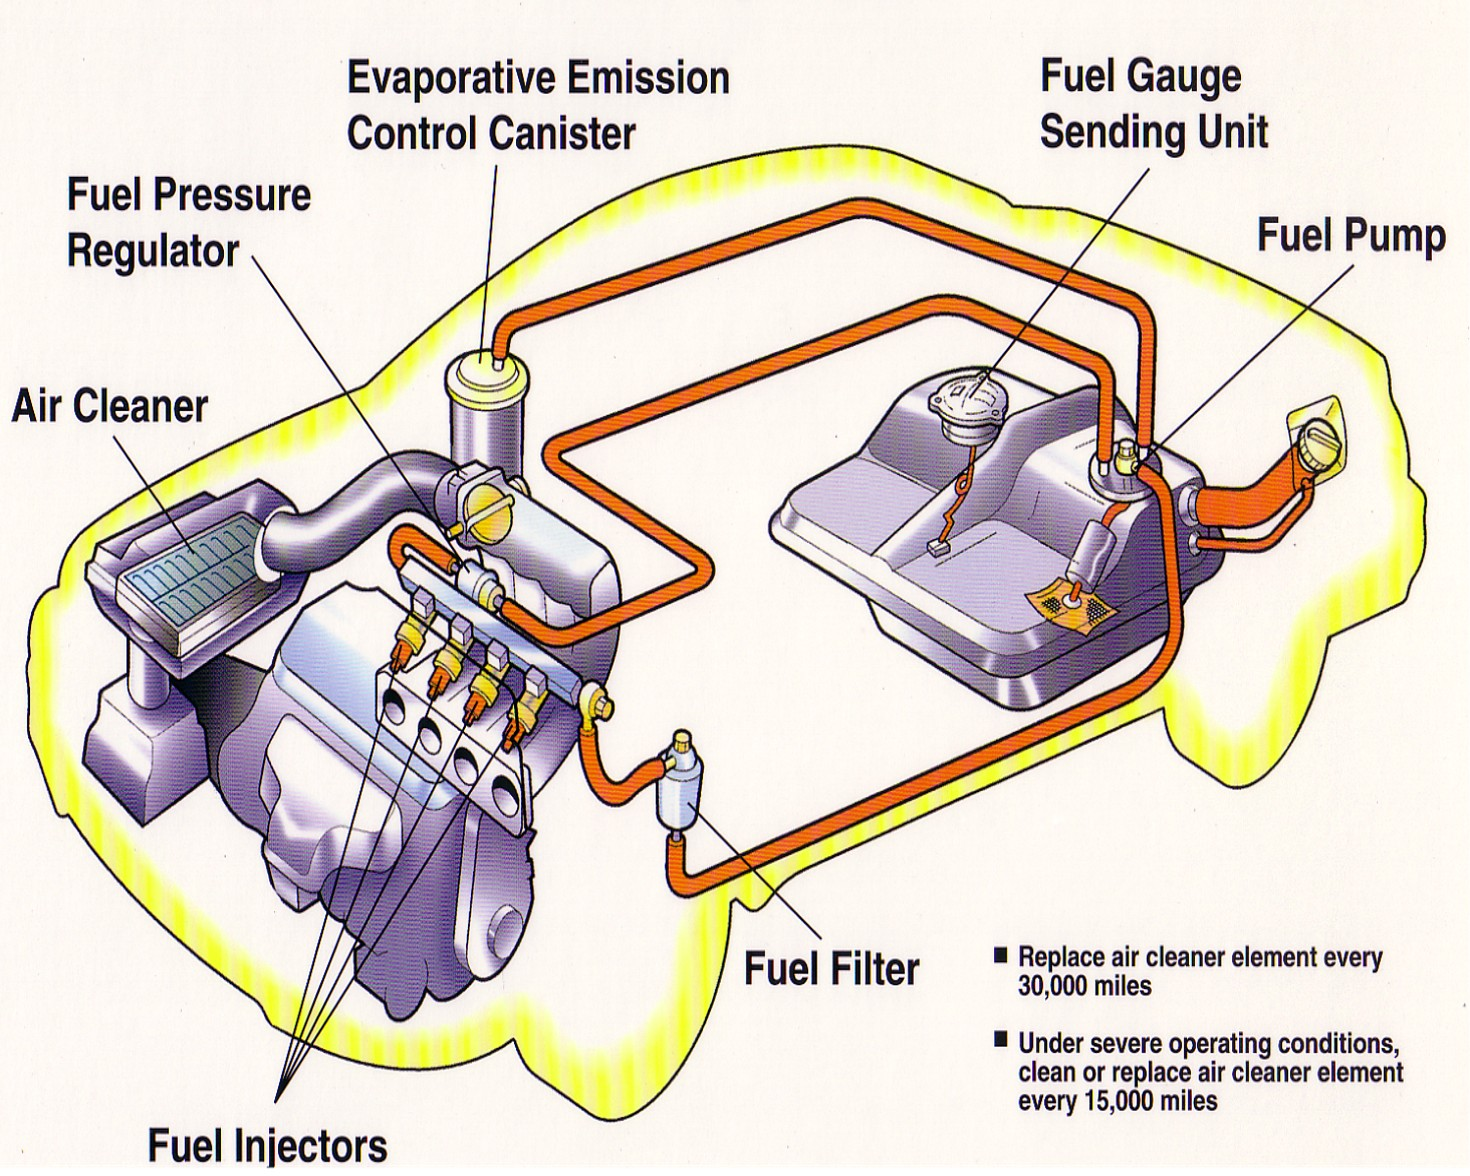 Technology: Fuel Injection System